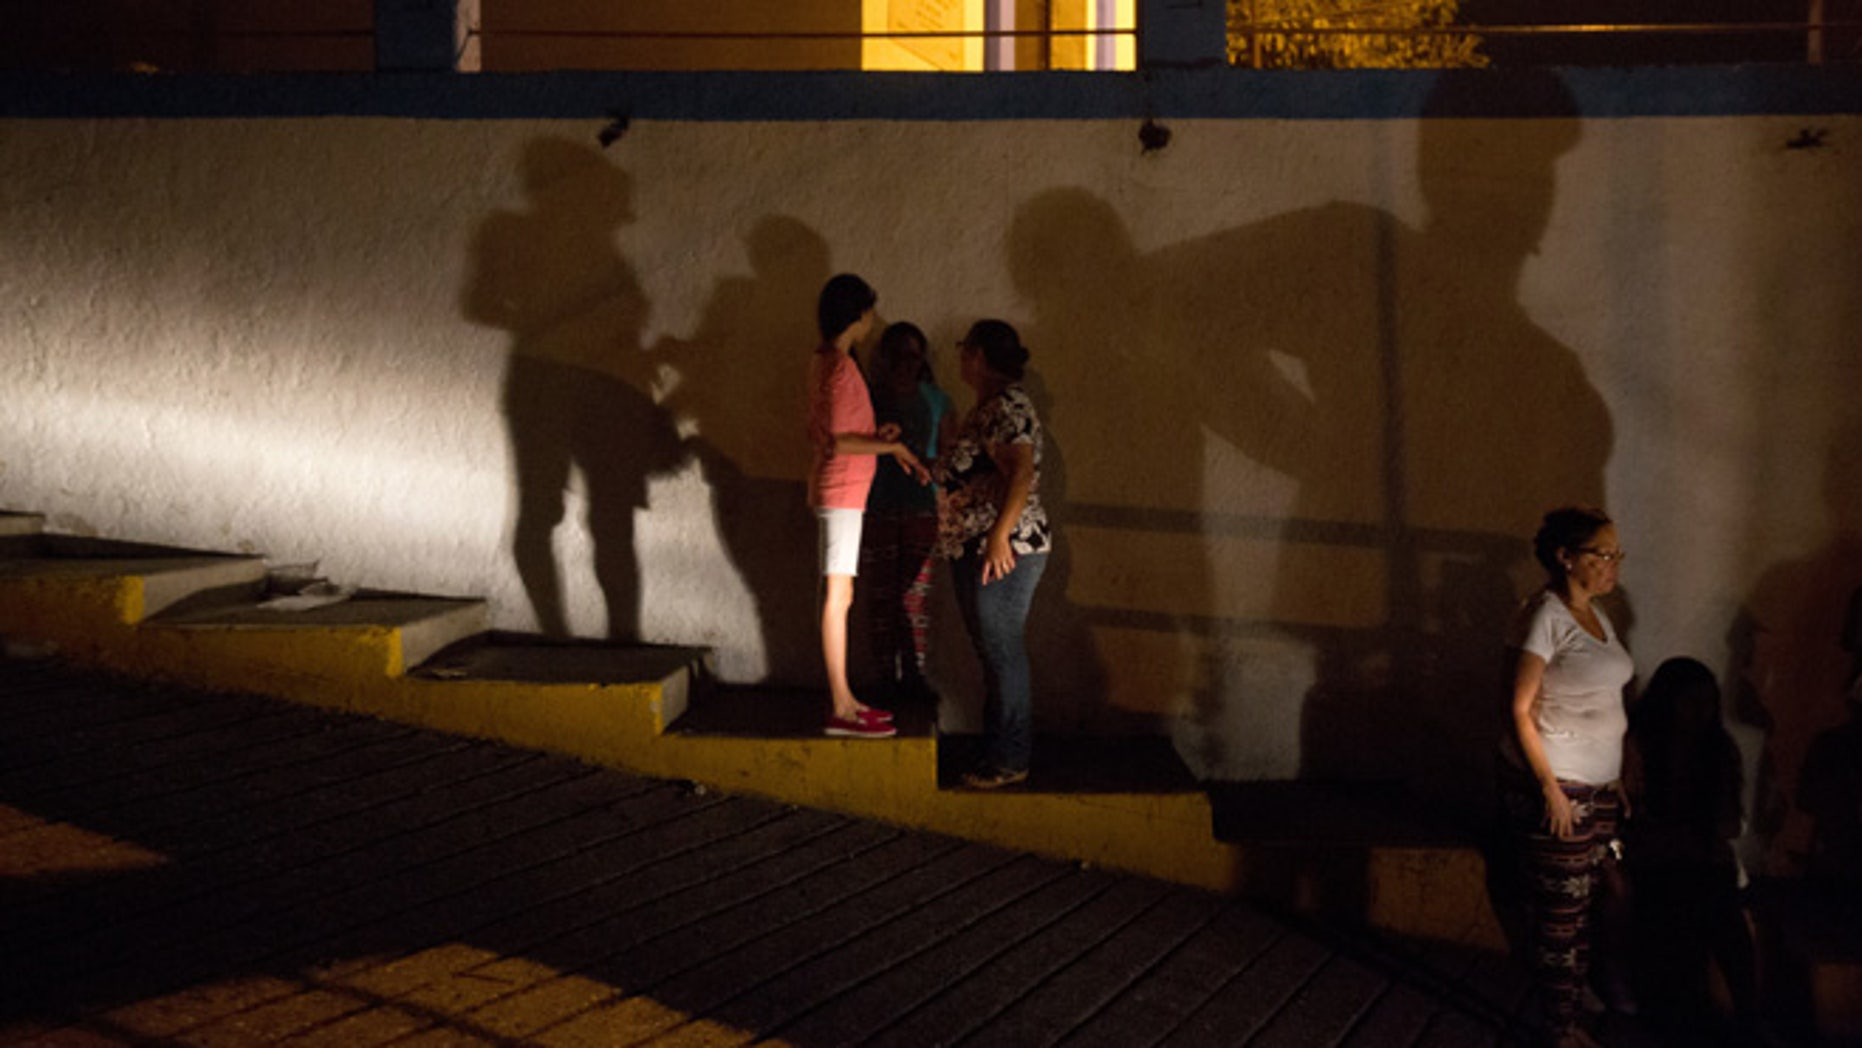 In this Saturday, April 23, 2016 photo, residents make their way to a protest against energy rationing after going through a 24-hour blackout, in the El Calvario neighborhood of El Hatillo, just outside of Caracas, Venezuela. Energy rationing has been added to the hardships faced by Venezuelans overwhelmed by inflation, shortages of food and medicine and rising crime. (AP Photo/Fernando Llano)